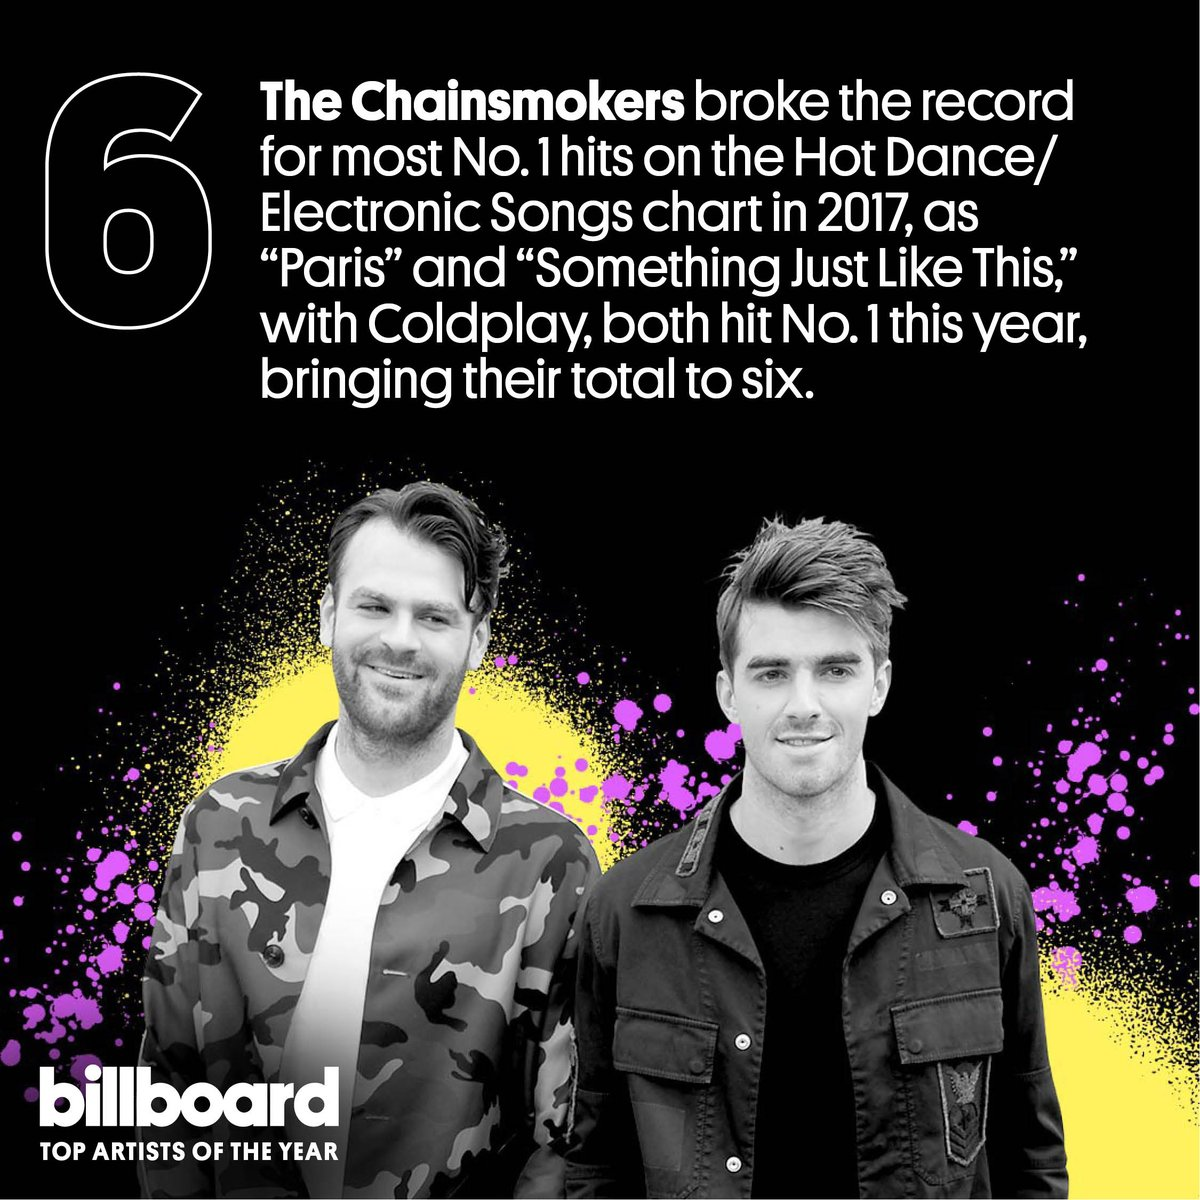 .@TheChainsmokers is No. 6 on our top artists of the year list! #YearInMusic https://t.co/fkTTDxScwj https://t.co/W4Fv5z5H4g